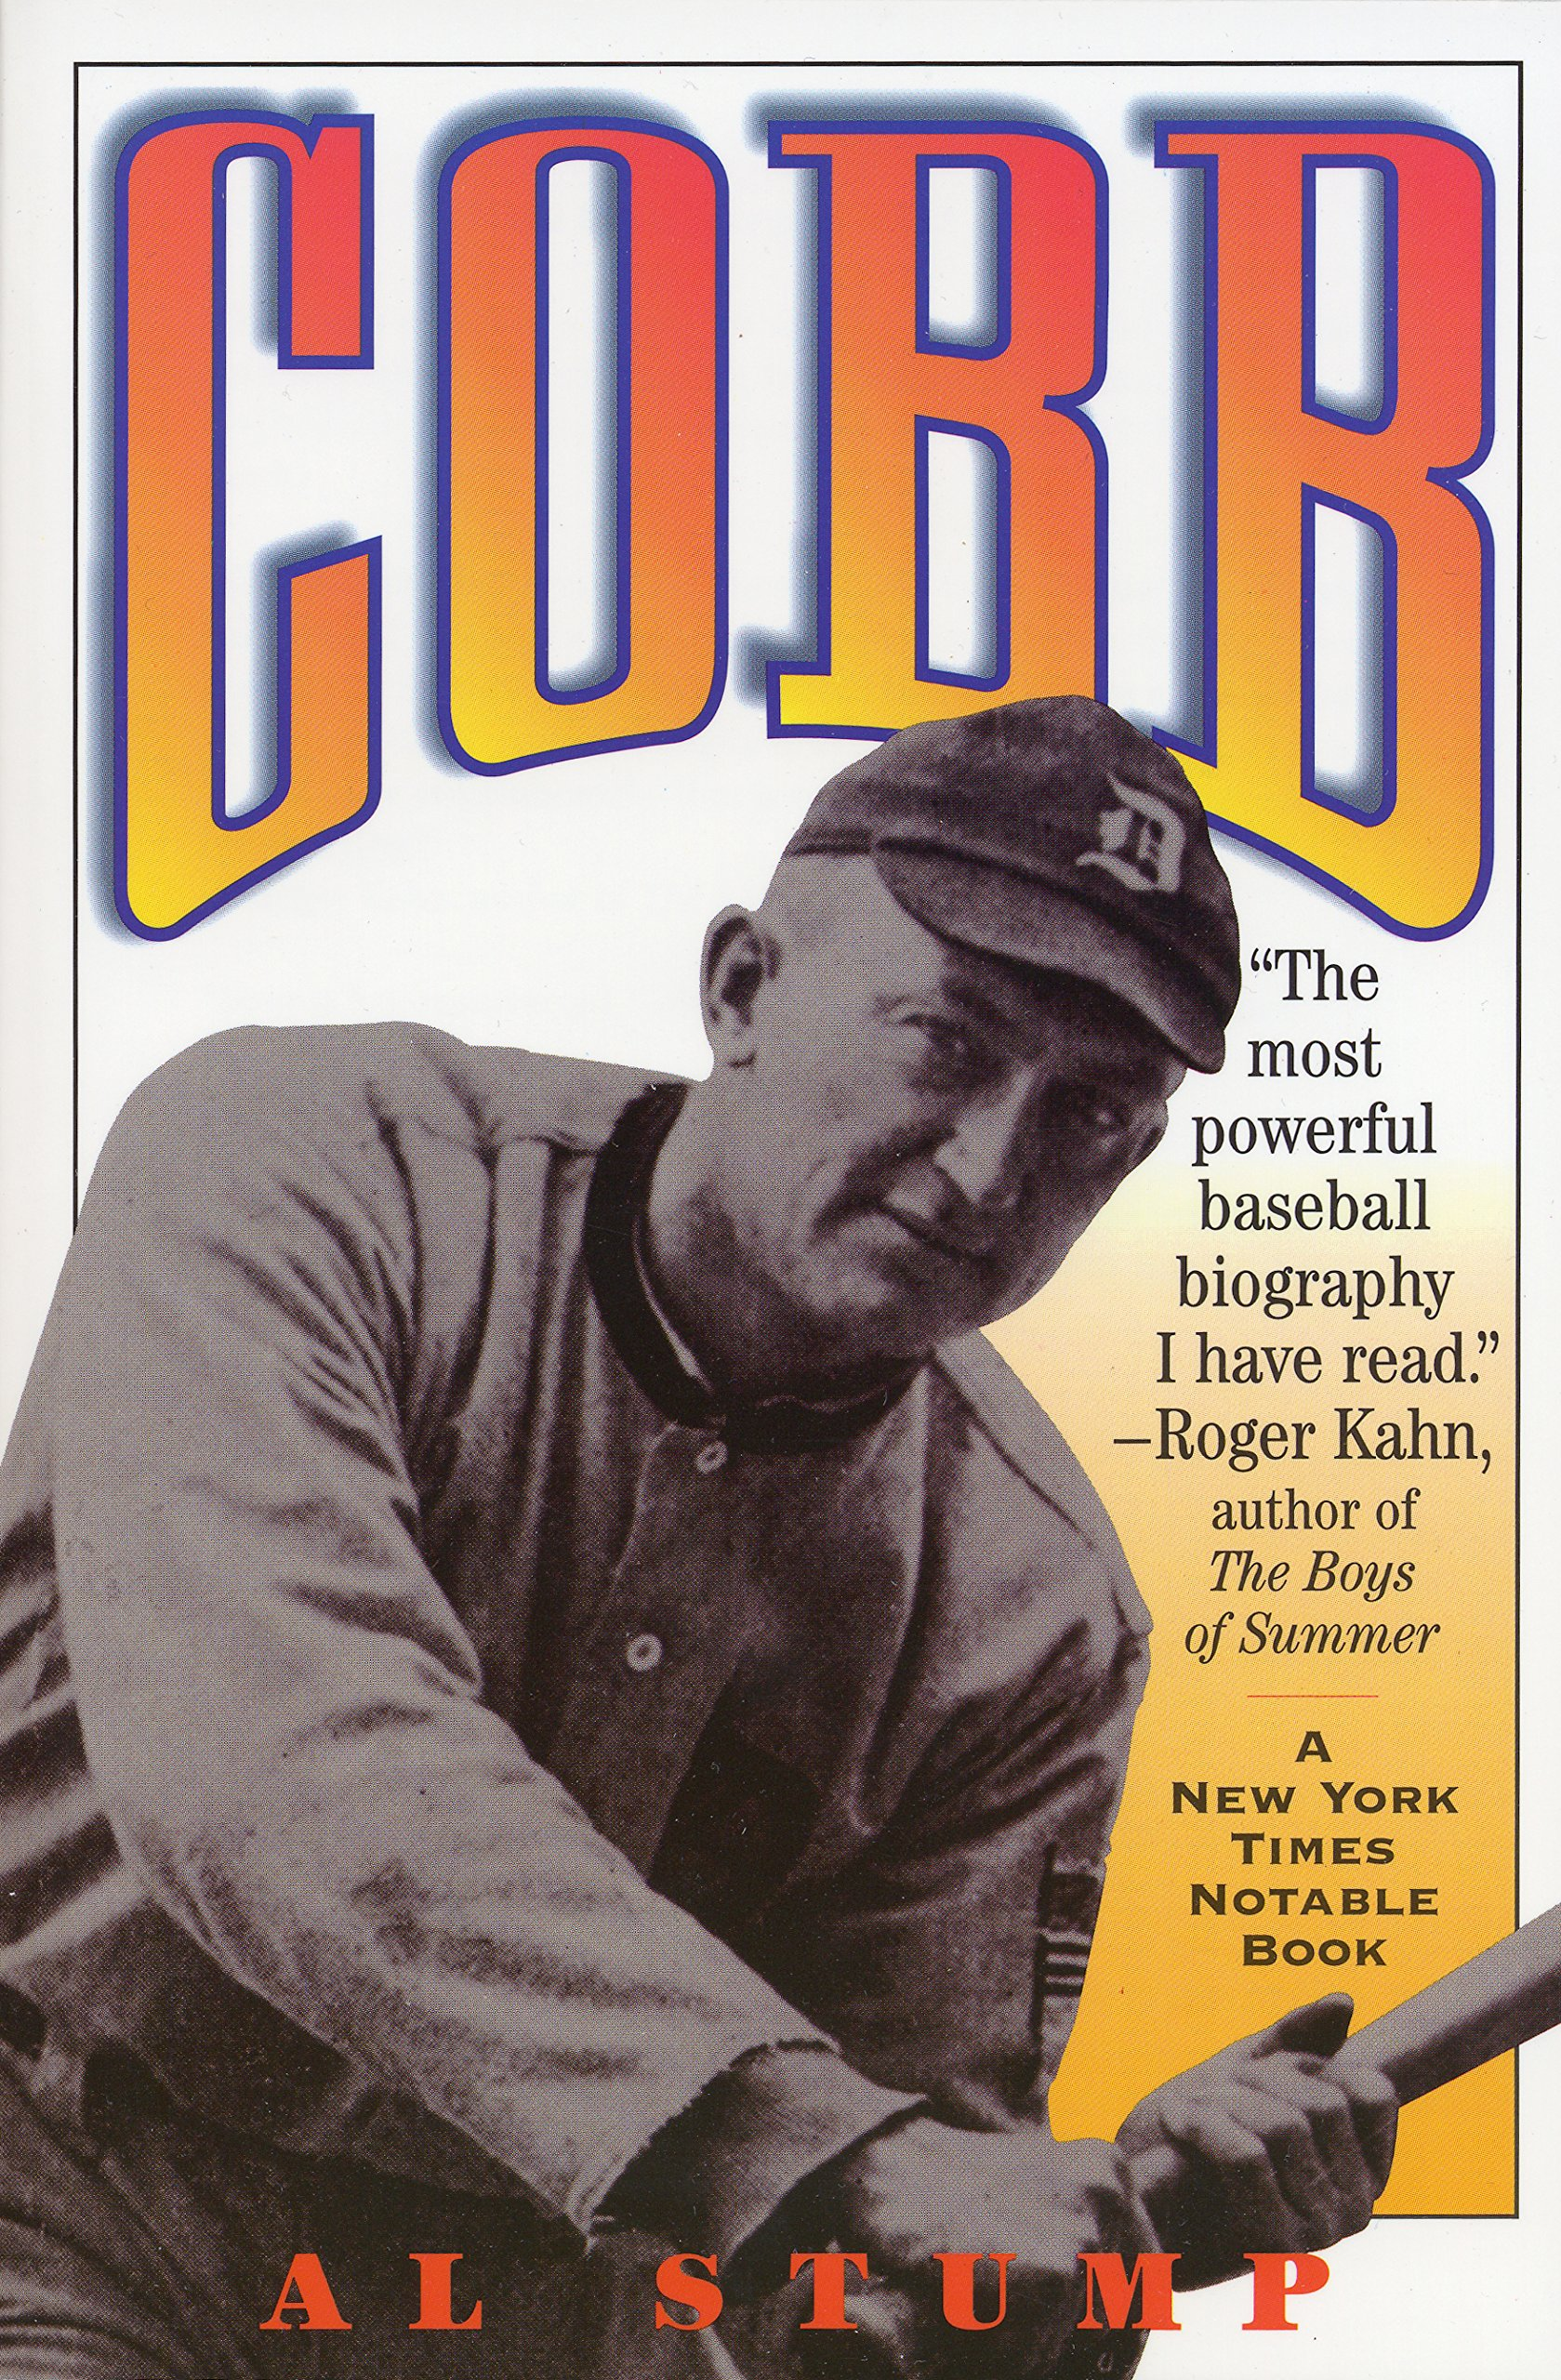 Cobb book cover